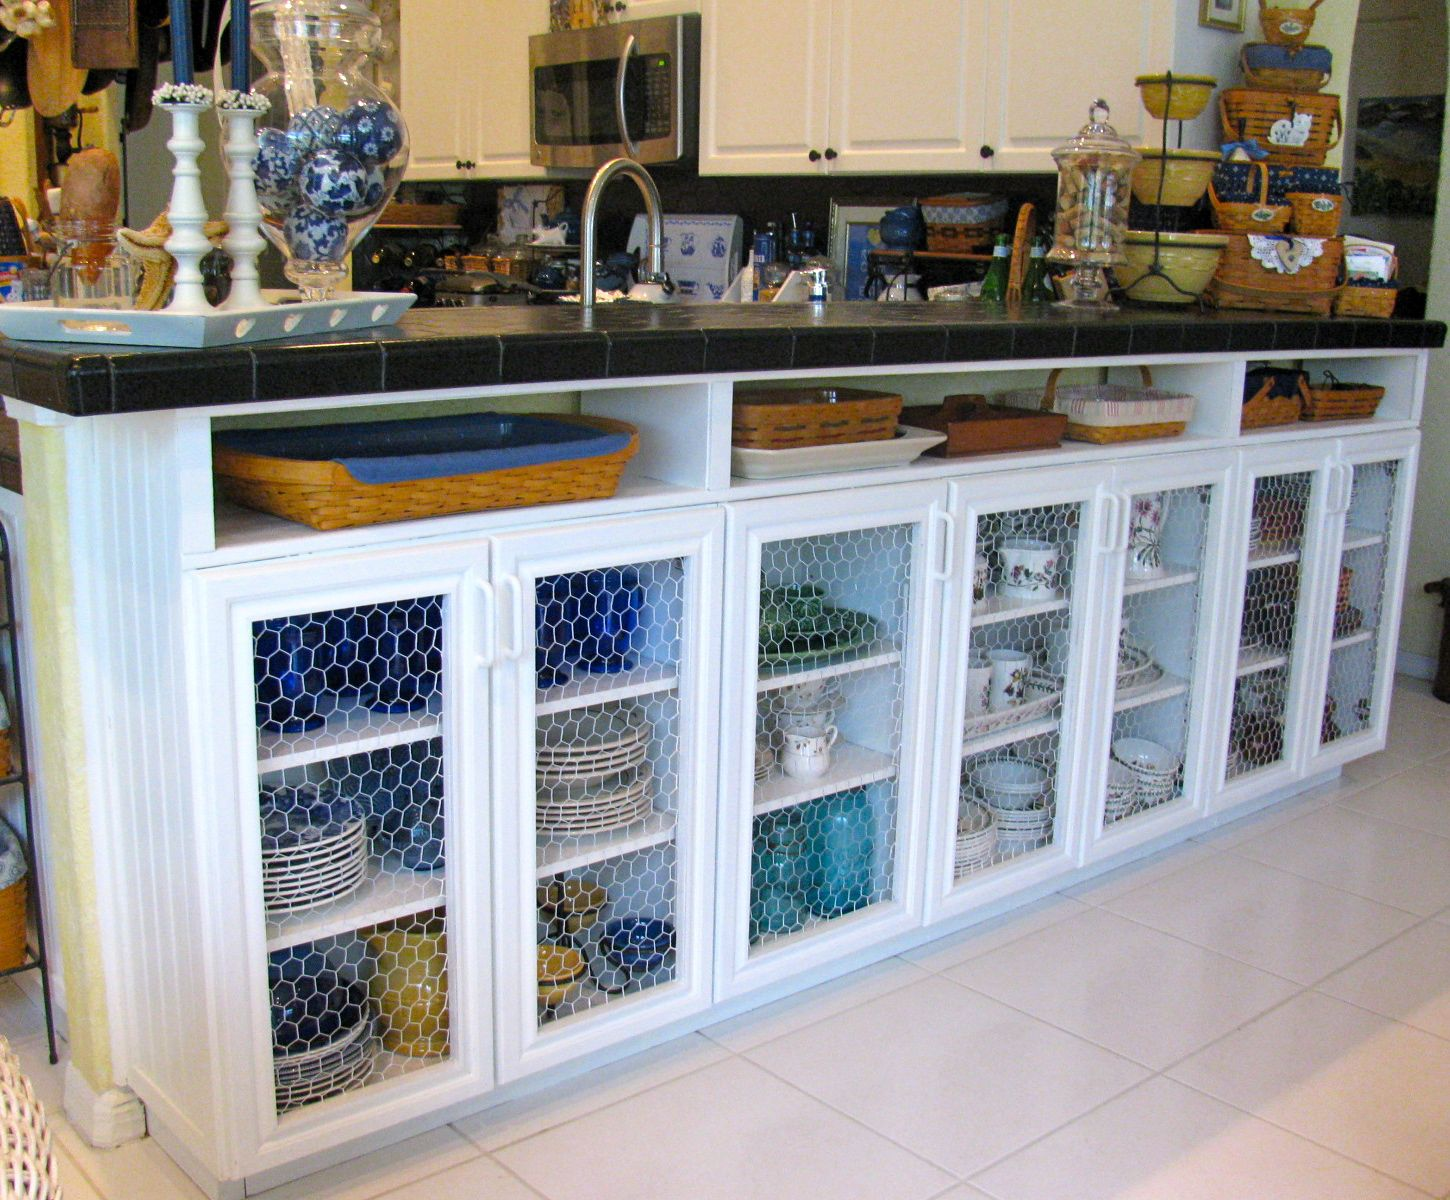 I could try this with some pre fab ikea shelves under our Kitchen under cabinet storage ideas